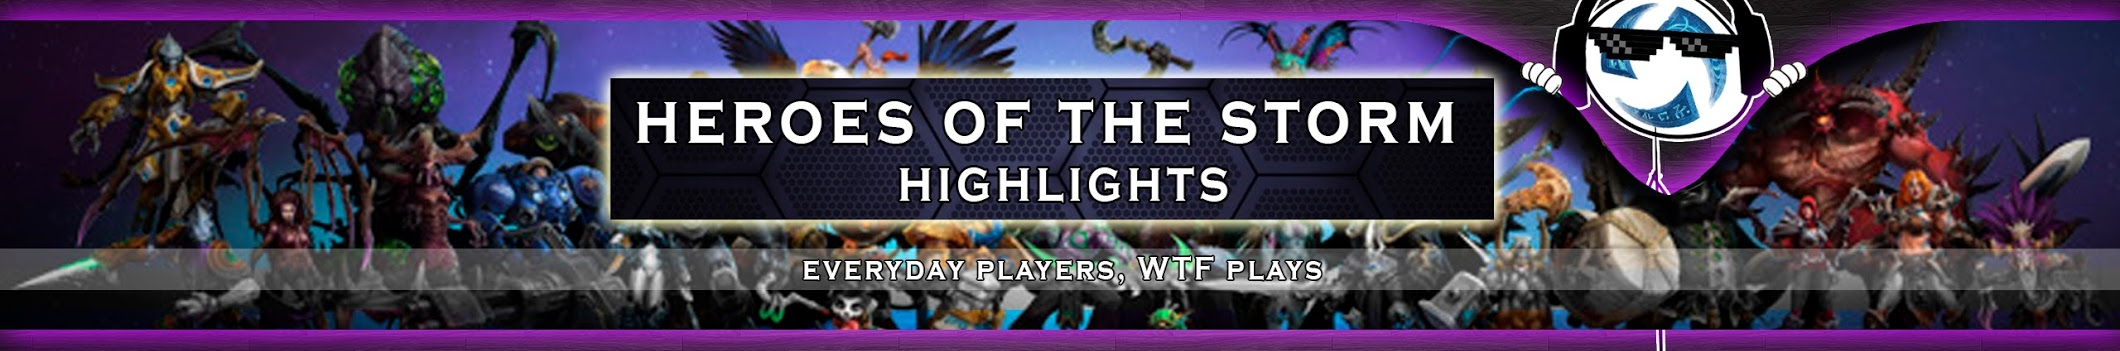 heroes of the storm highlights